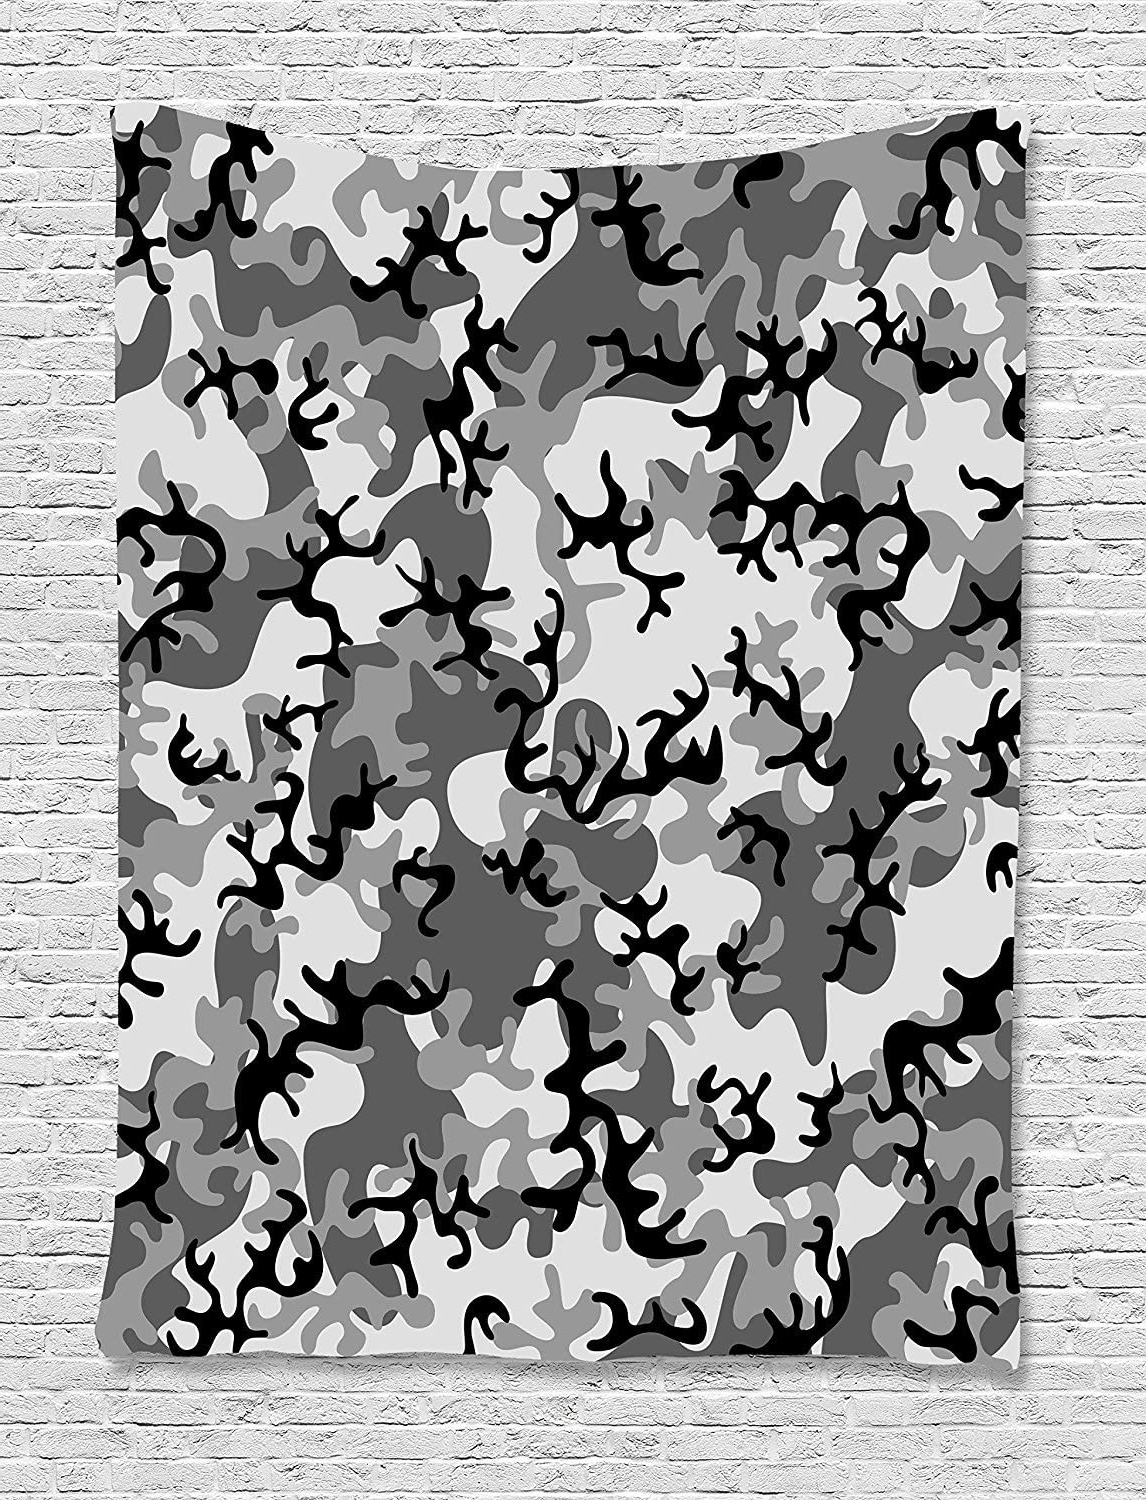 Blended Fabric Artifice Ii Wall Hangings Throughout Fashionable Ajnxcid Camo Tapestry, Battledress Concept Concealment (View 4 of 20)